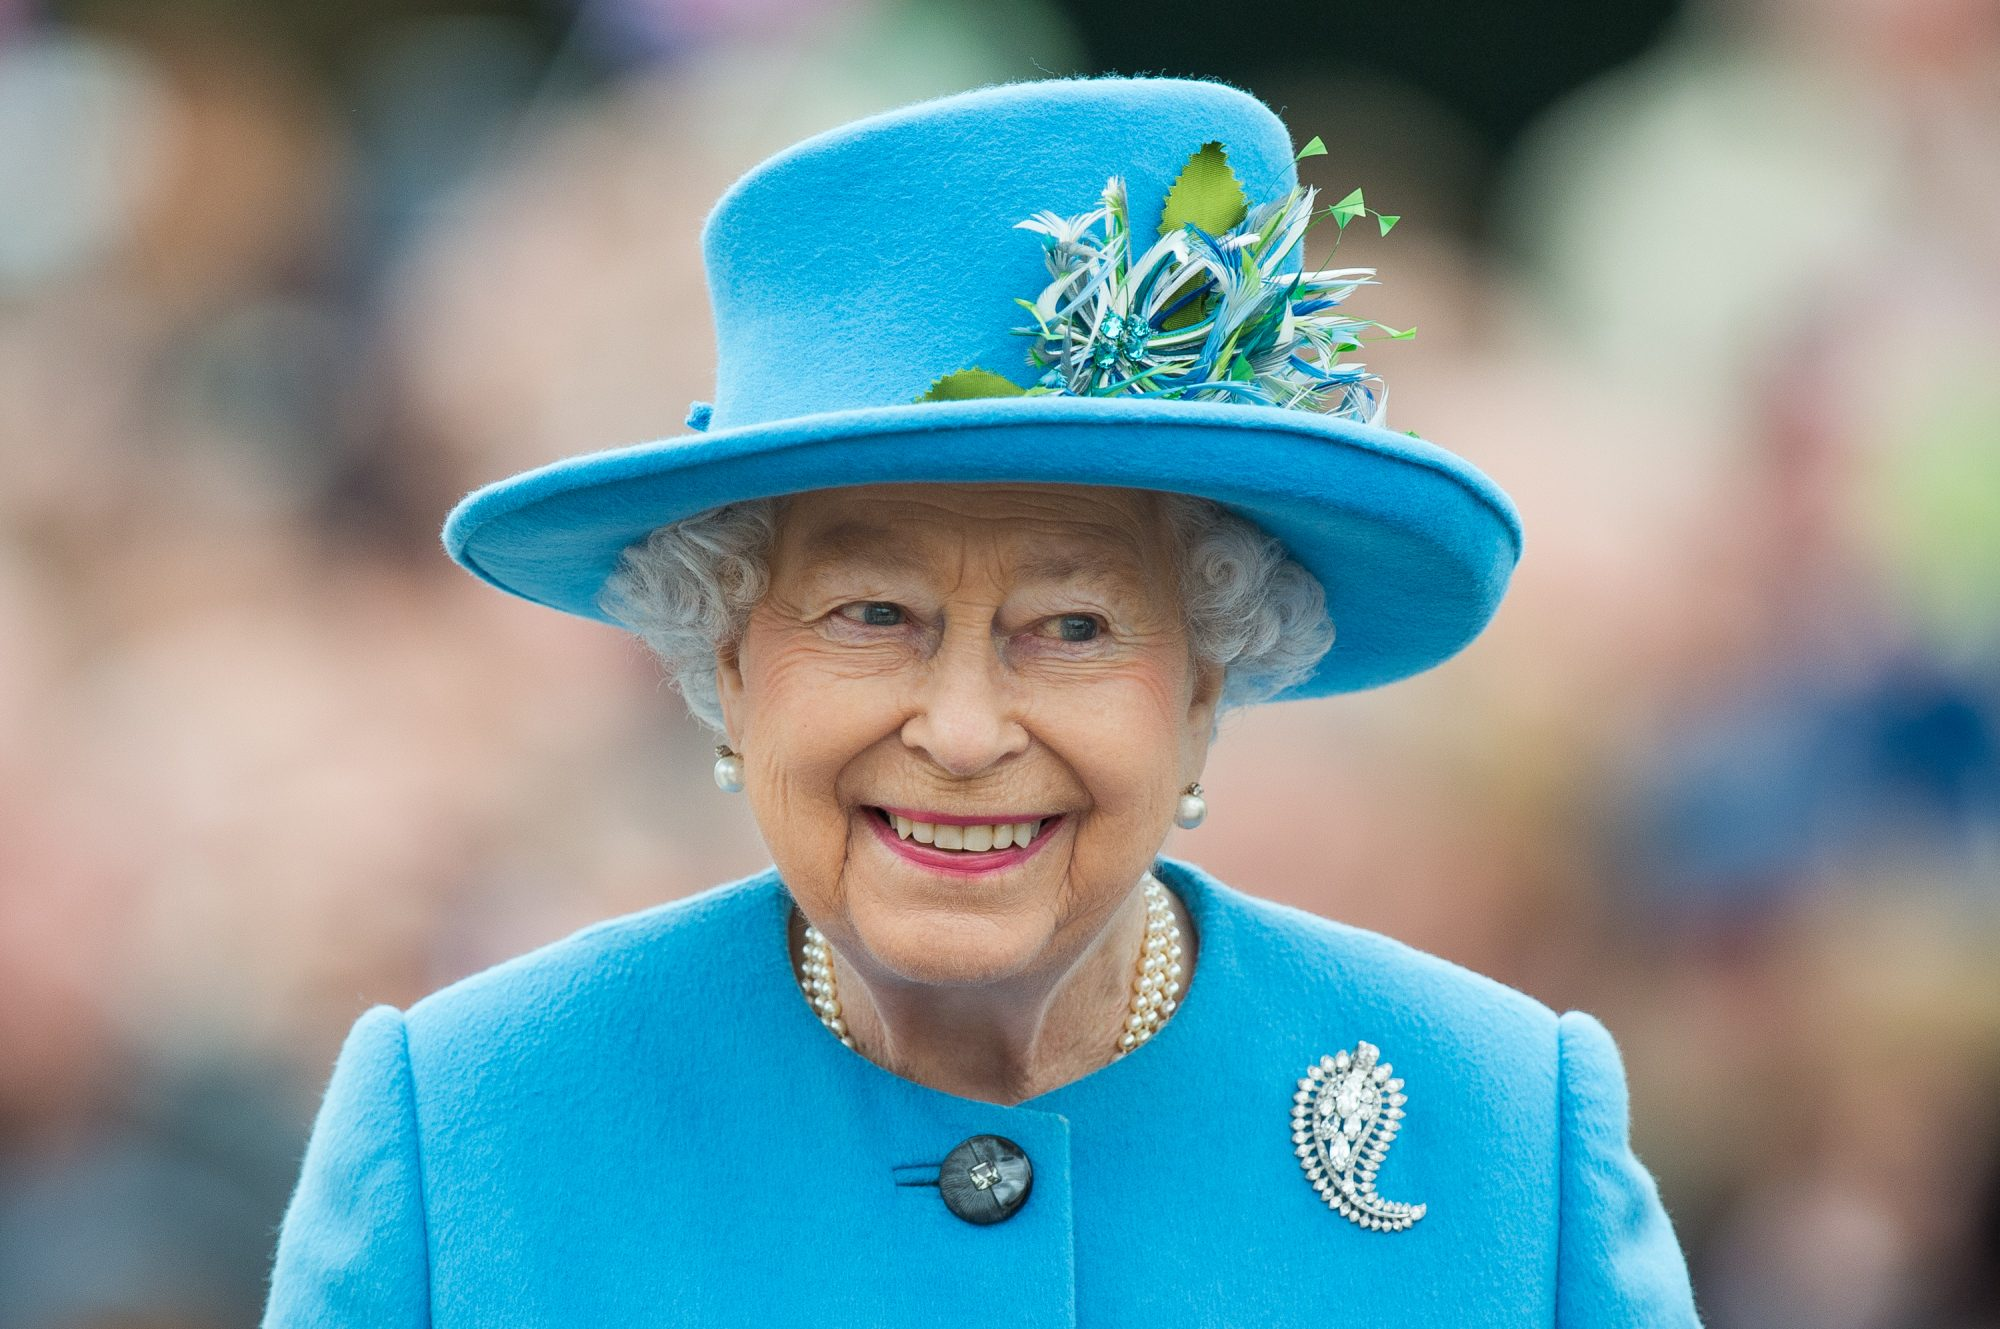 queen Elizabeth smiling wearing blue